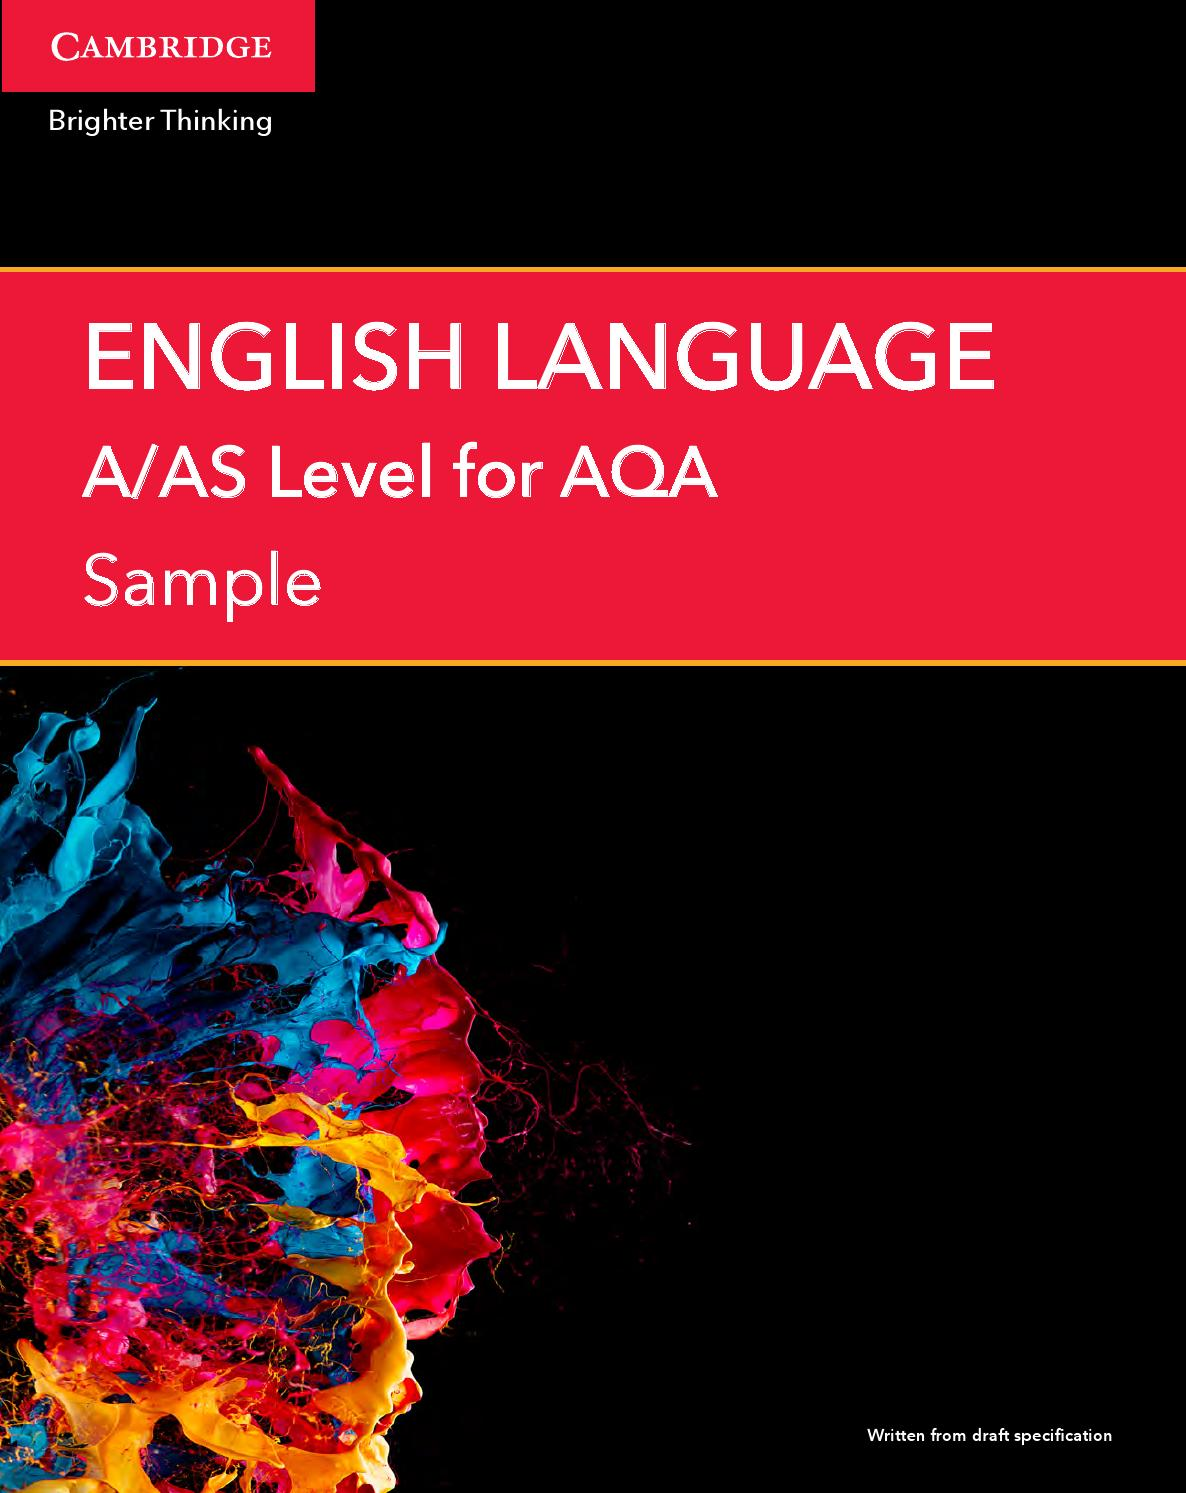 aqa level english lit coursework Andrew moore's resource site for english teachers free access to extensive teaching resources for english at ks3/4, aqa english lit gce coursework gcse and advanced level.